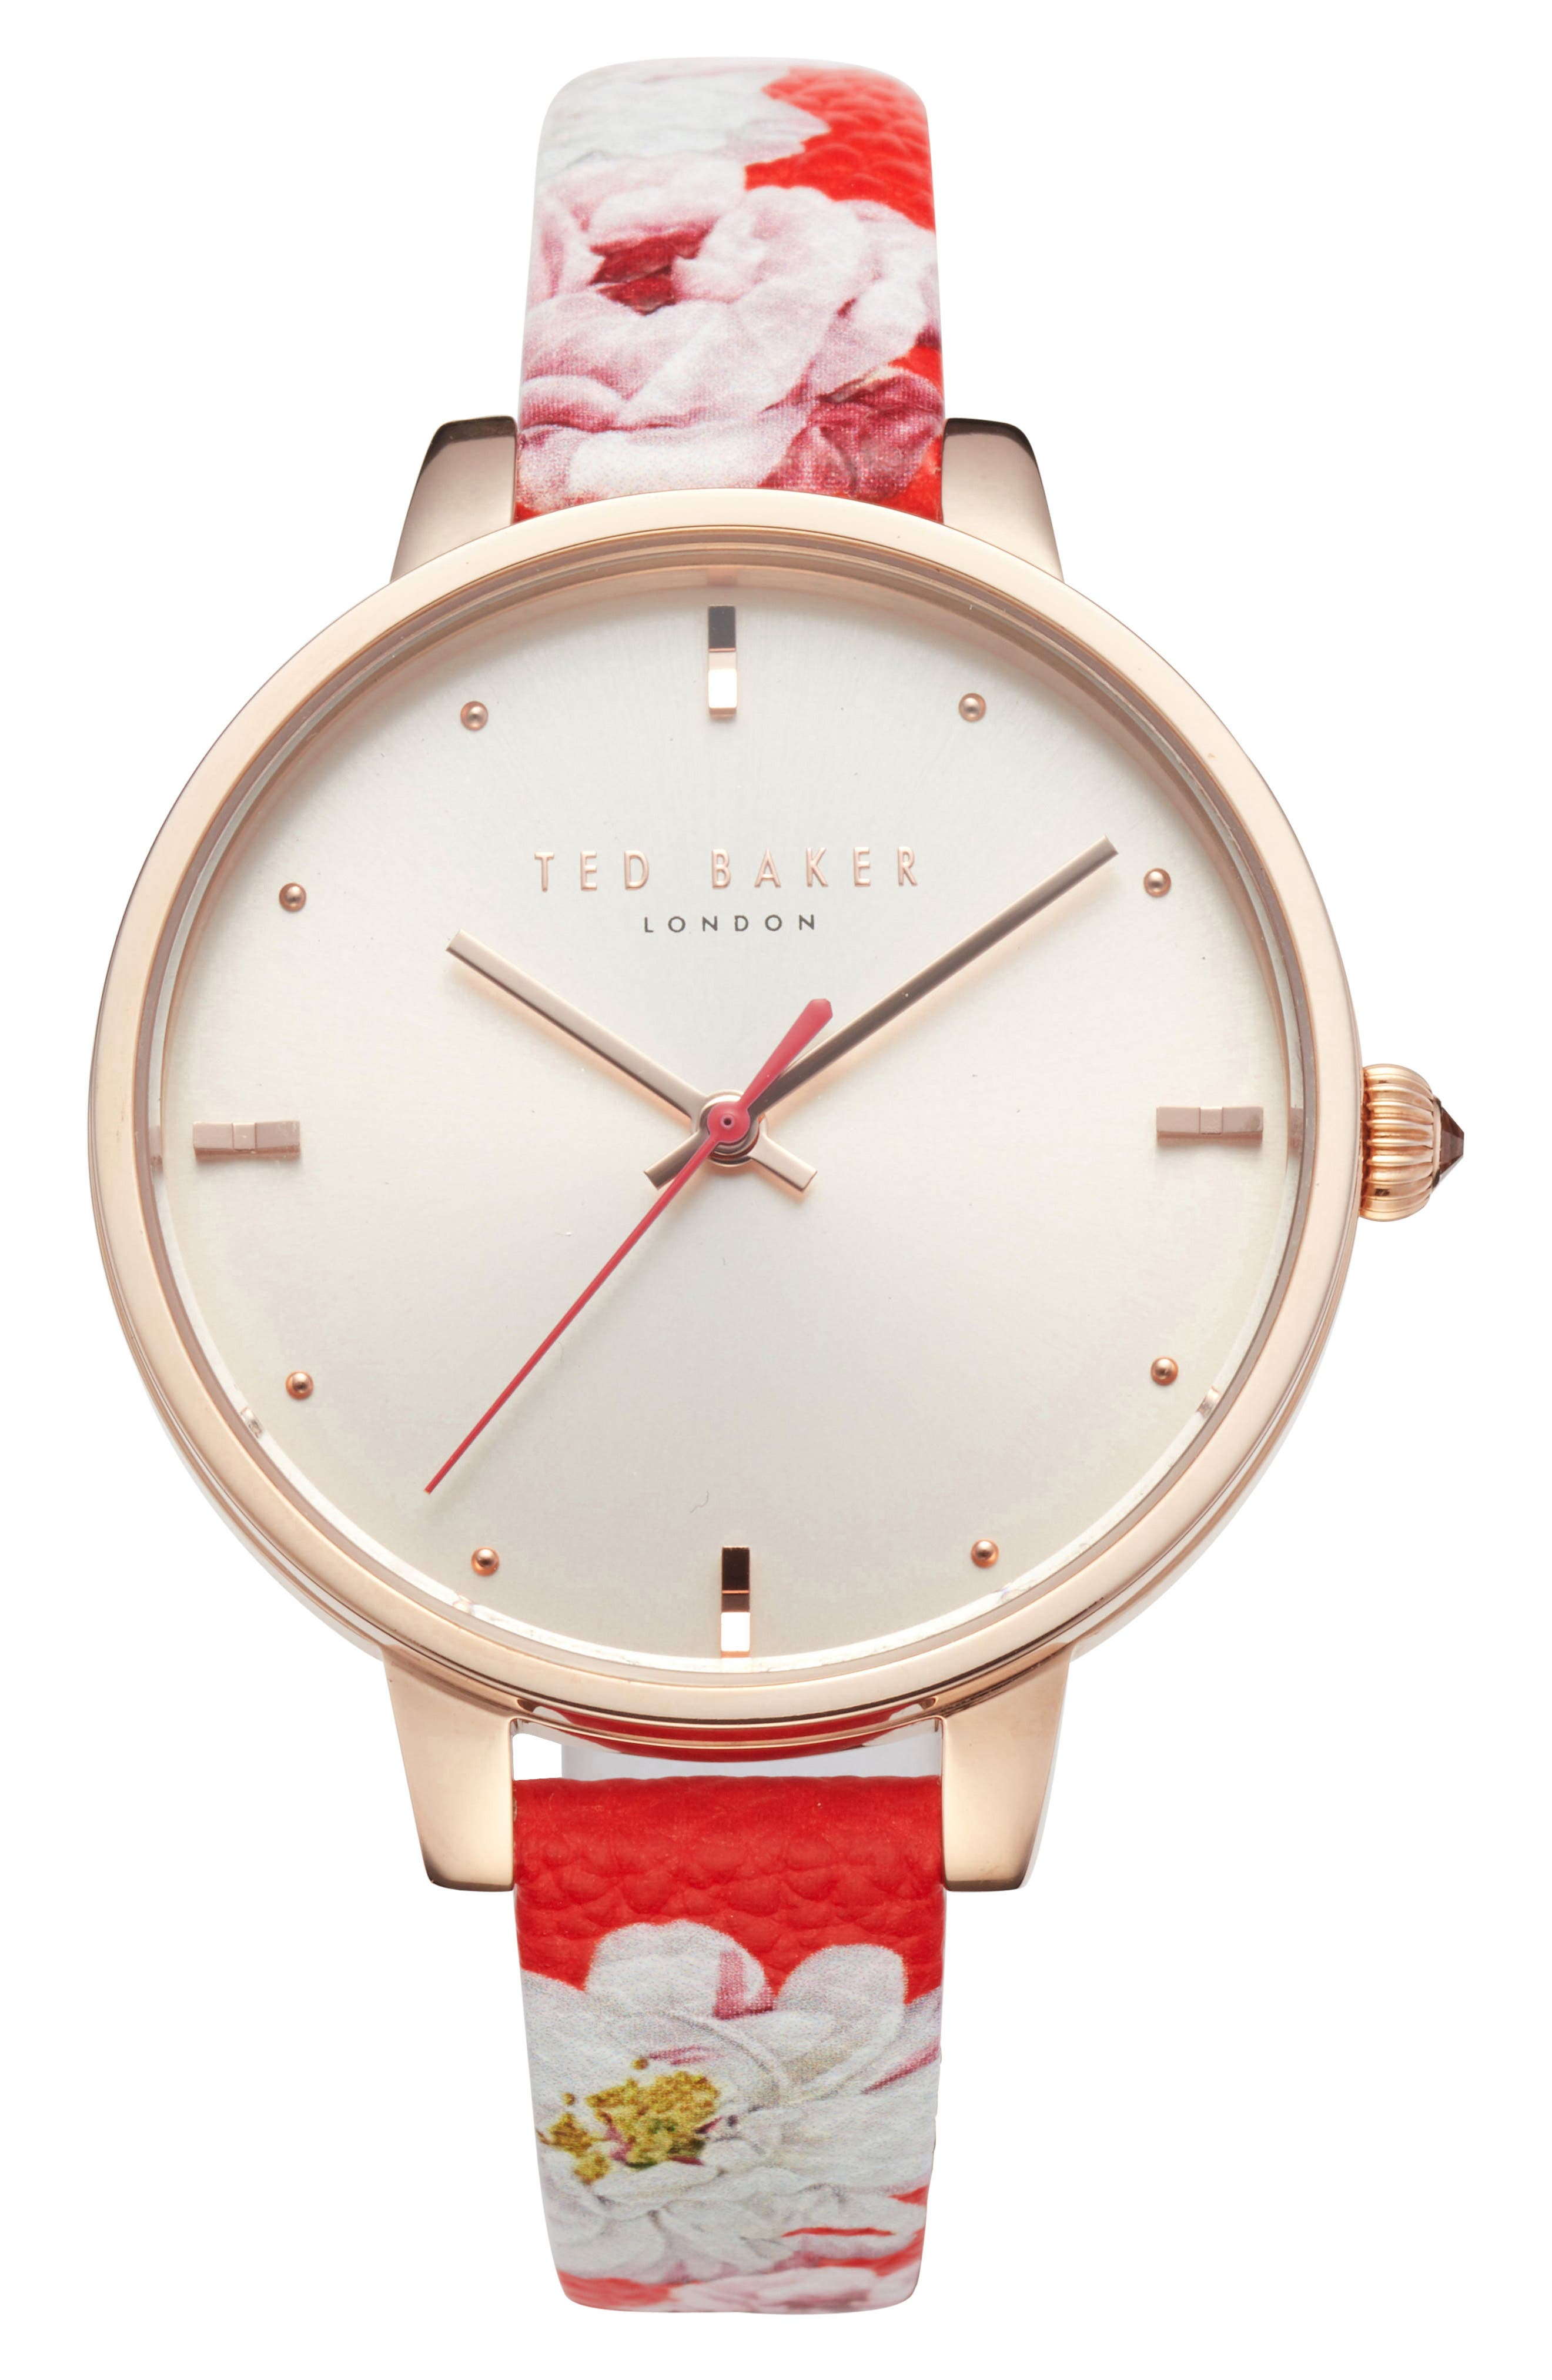 Image of Ted Baker London Women's Kate Leather Strap Watch, 36mm